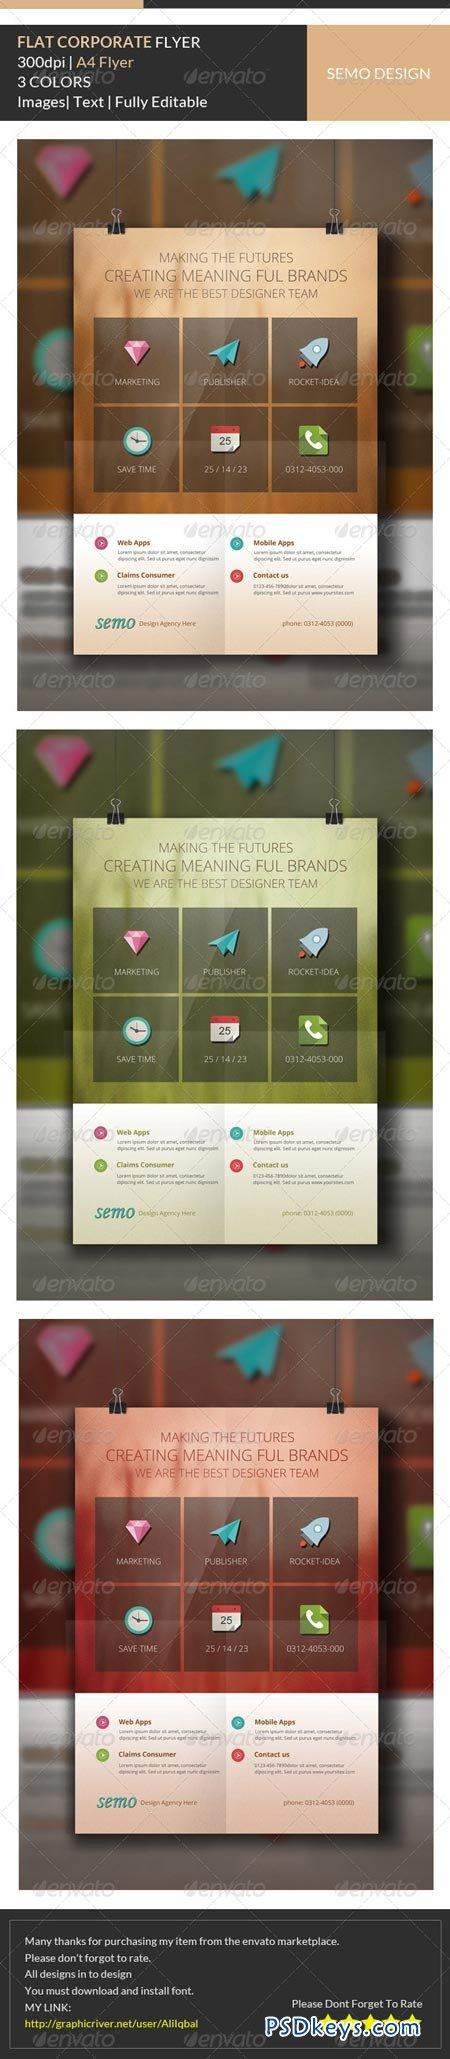 Flat Corporate Flyer Template 6666088